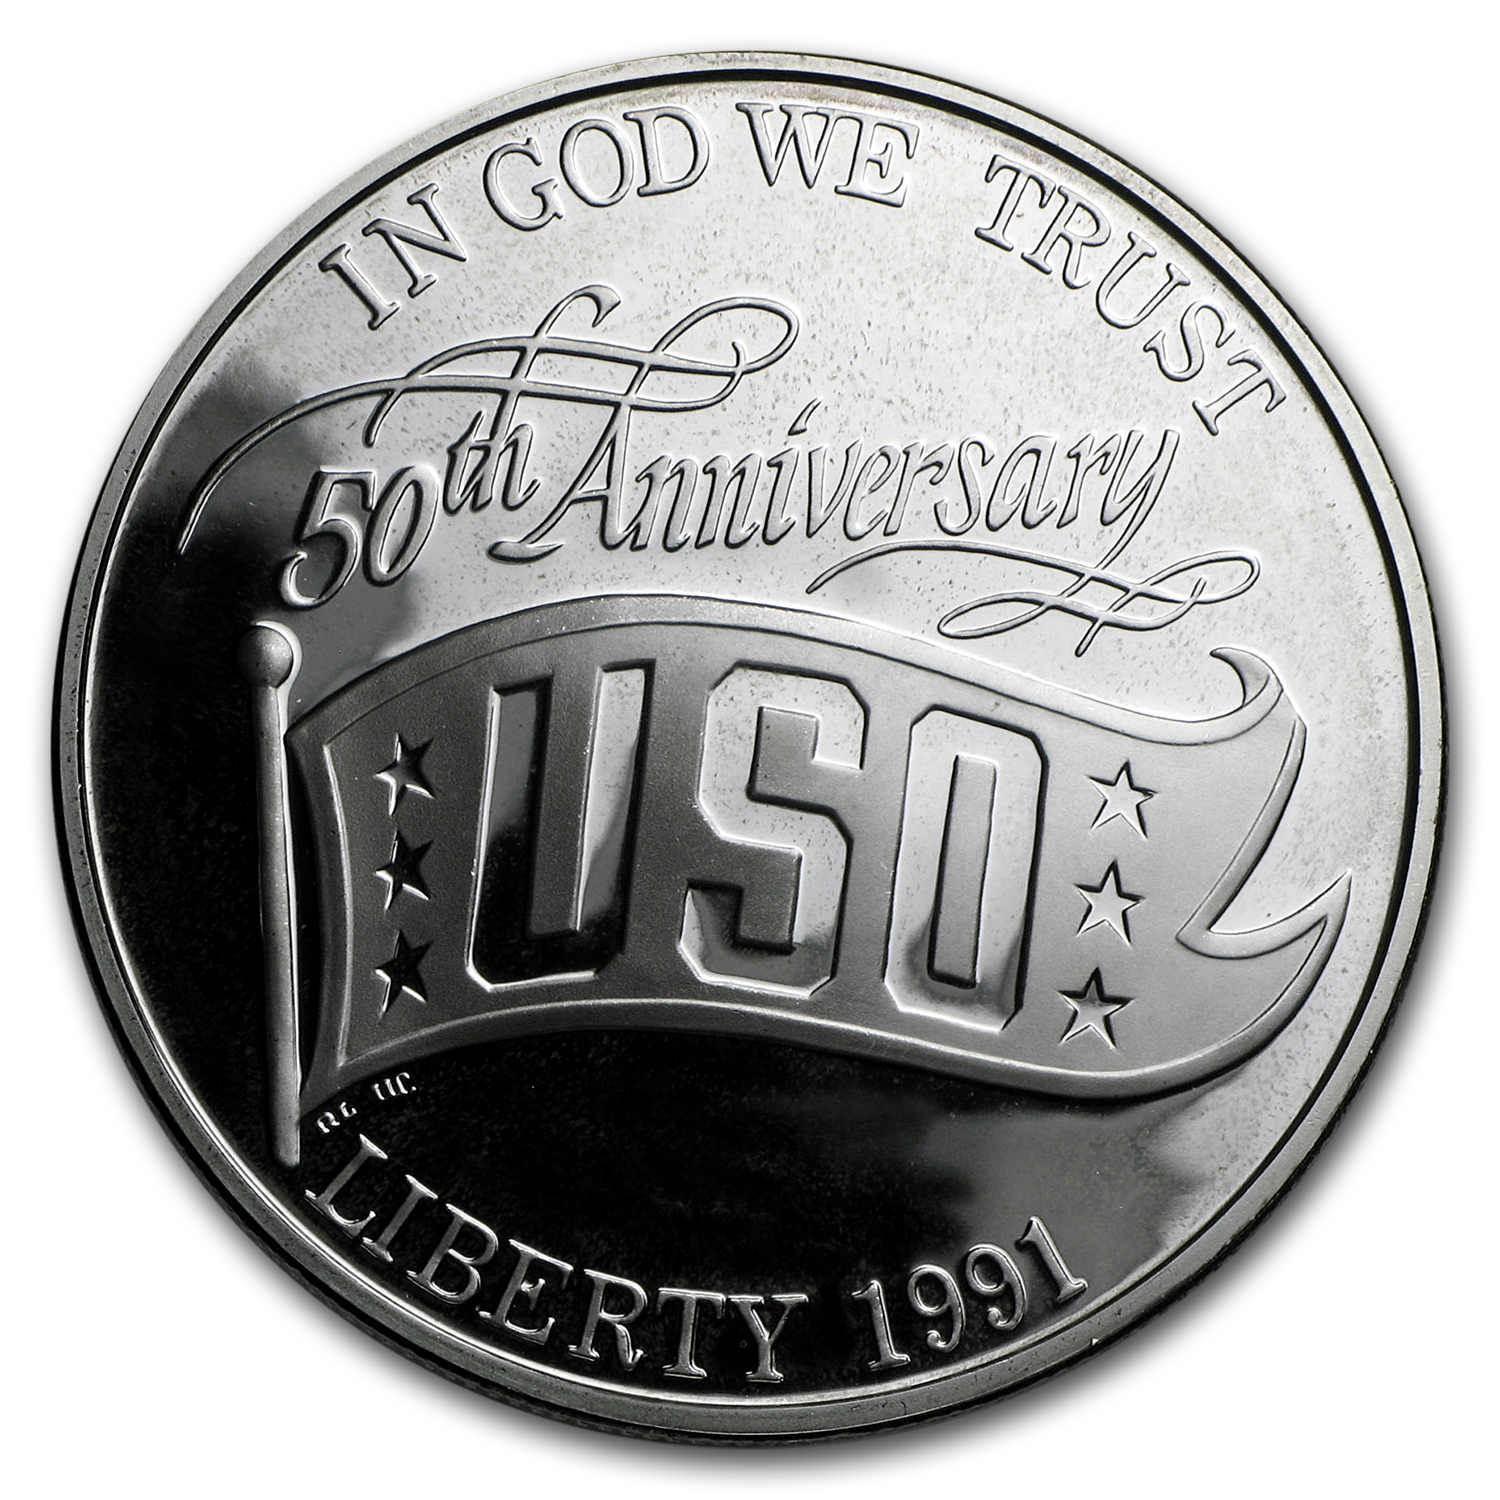 1991-S USO $1 Silver Commem Proof (w/Box & COA)